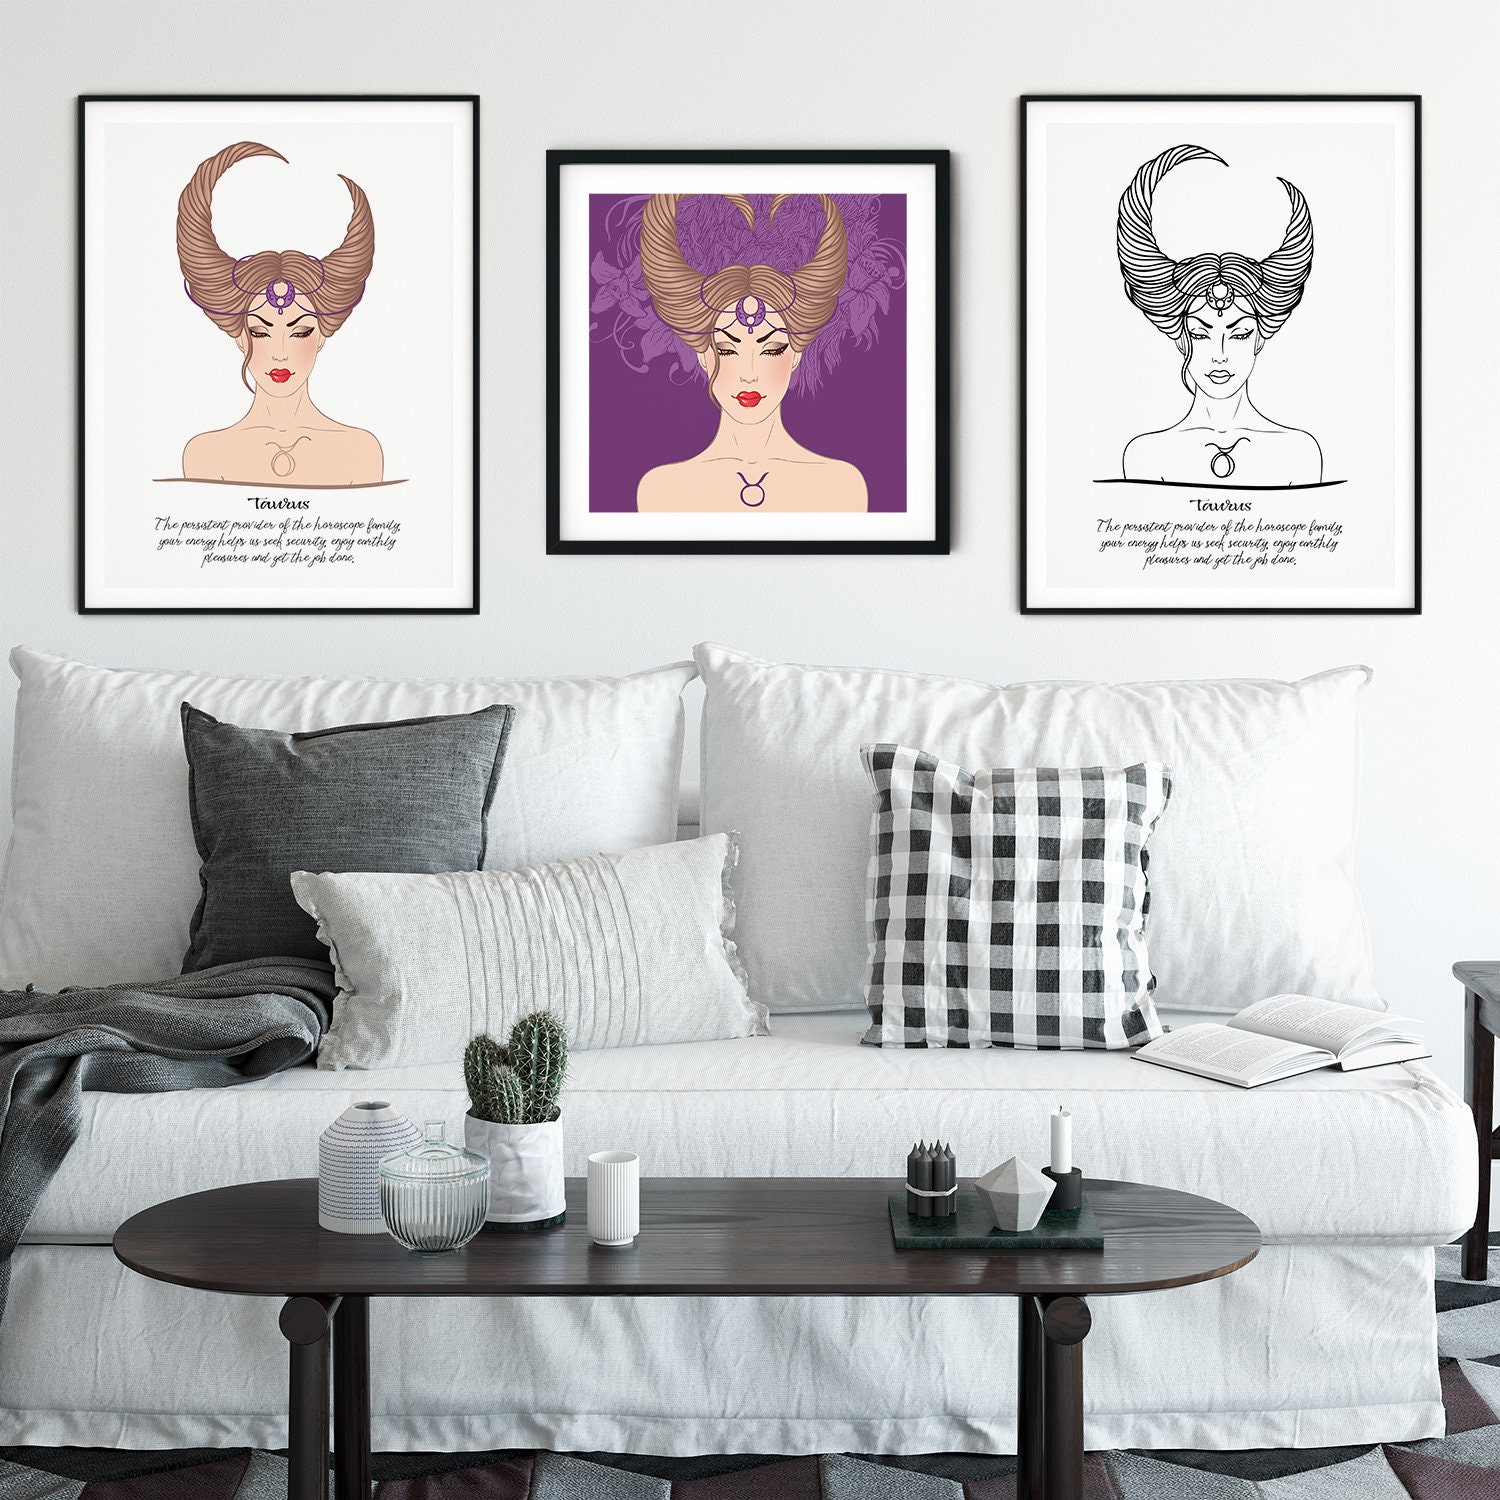 Taurus in 3 Styles Zodiac Drawing Horoscope Astrology in Black & White and  Colored to Remind Us of Our Strengths Printable Digital Download